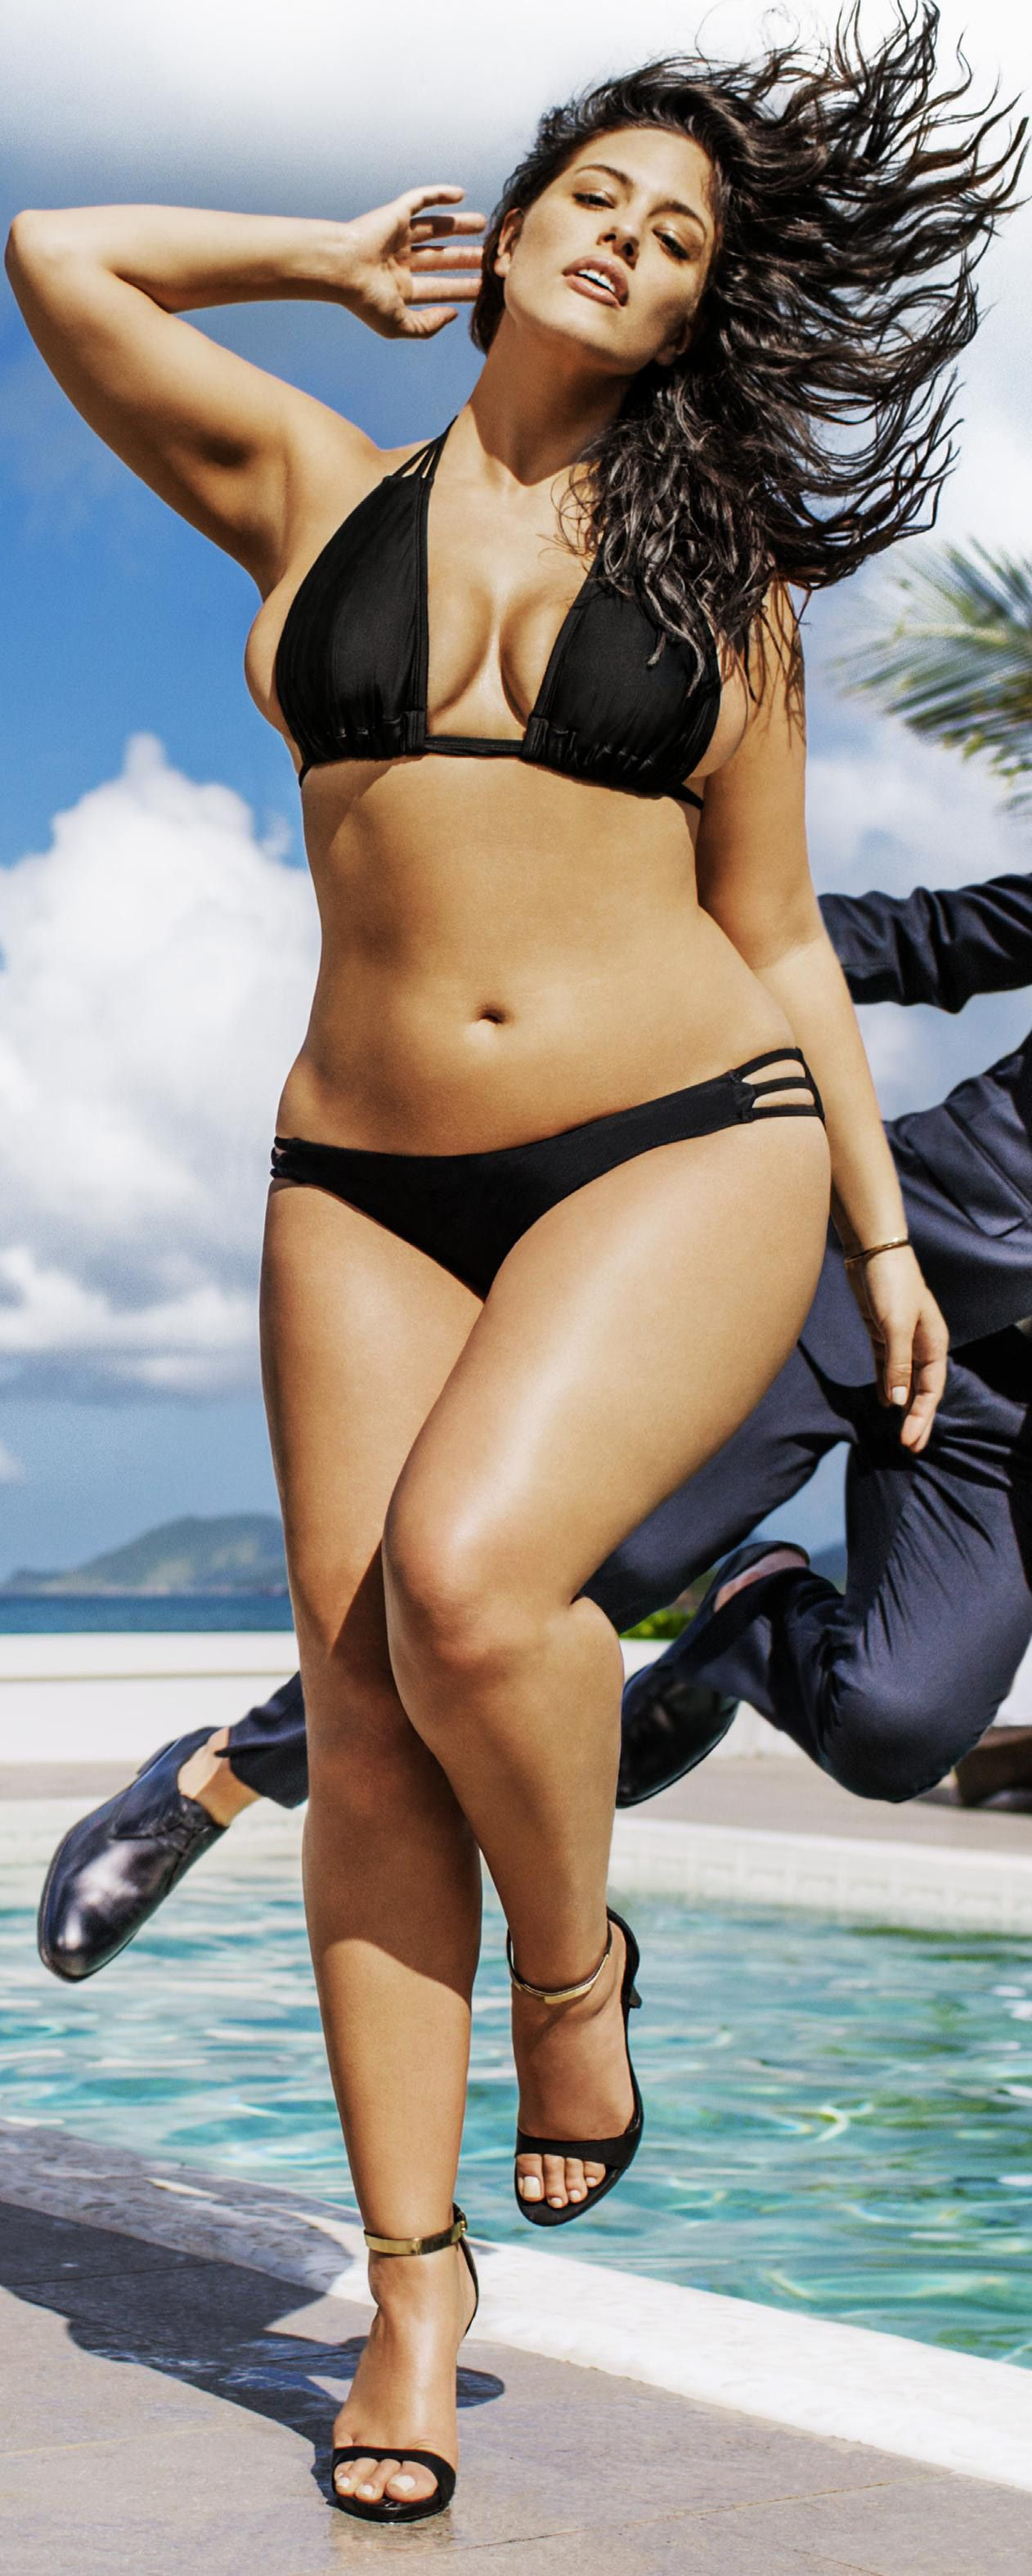 7e65214abe3f1 Model Ashley Graham (size 16) is Voluptuousness Personified | Sports  Illustrated Swimsuit Issue Features Its First-Ever Plus-Size Model!